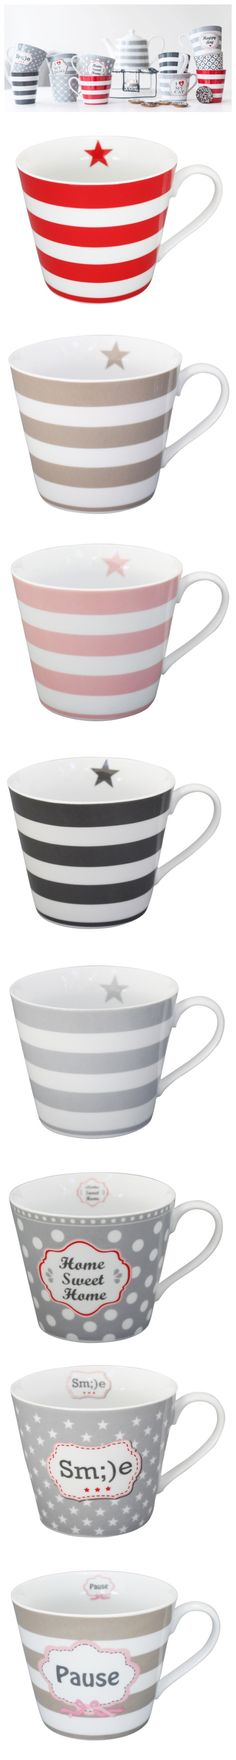 new Striped Mugs by Krasilnikoff  so elegant... don't you think so?